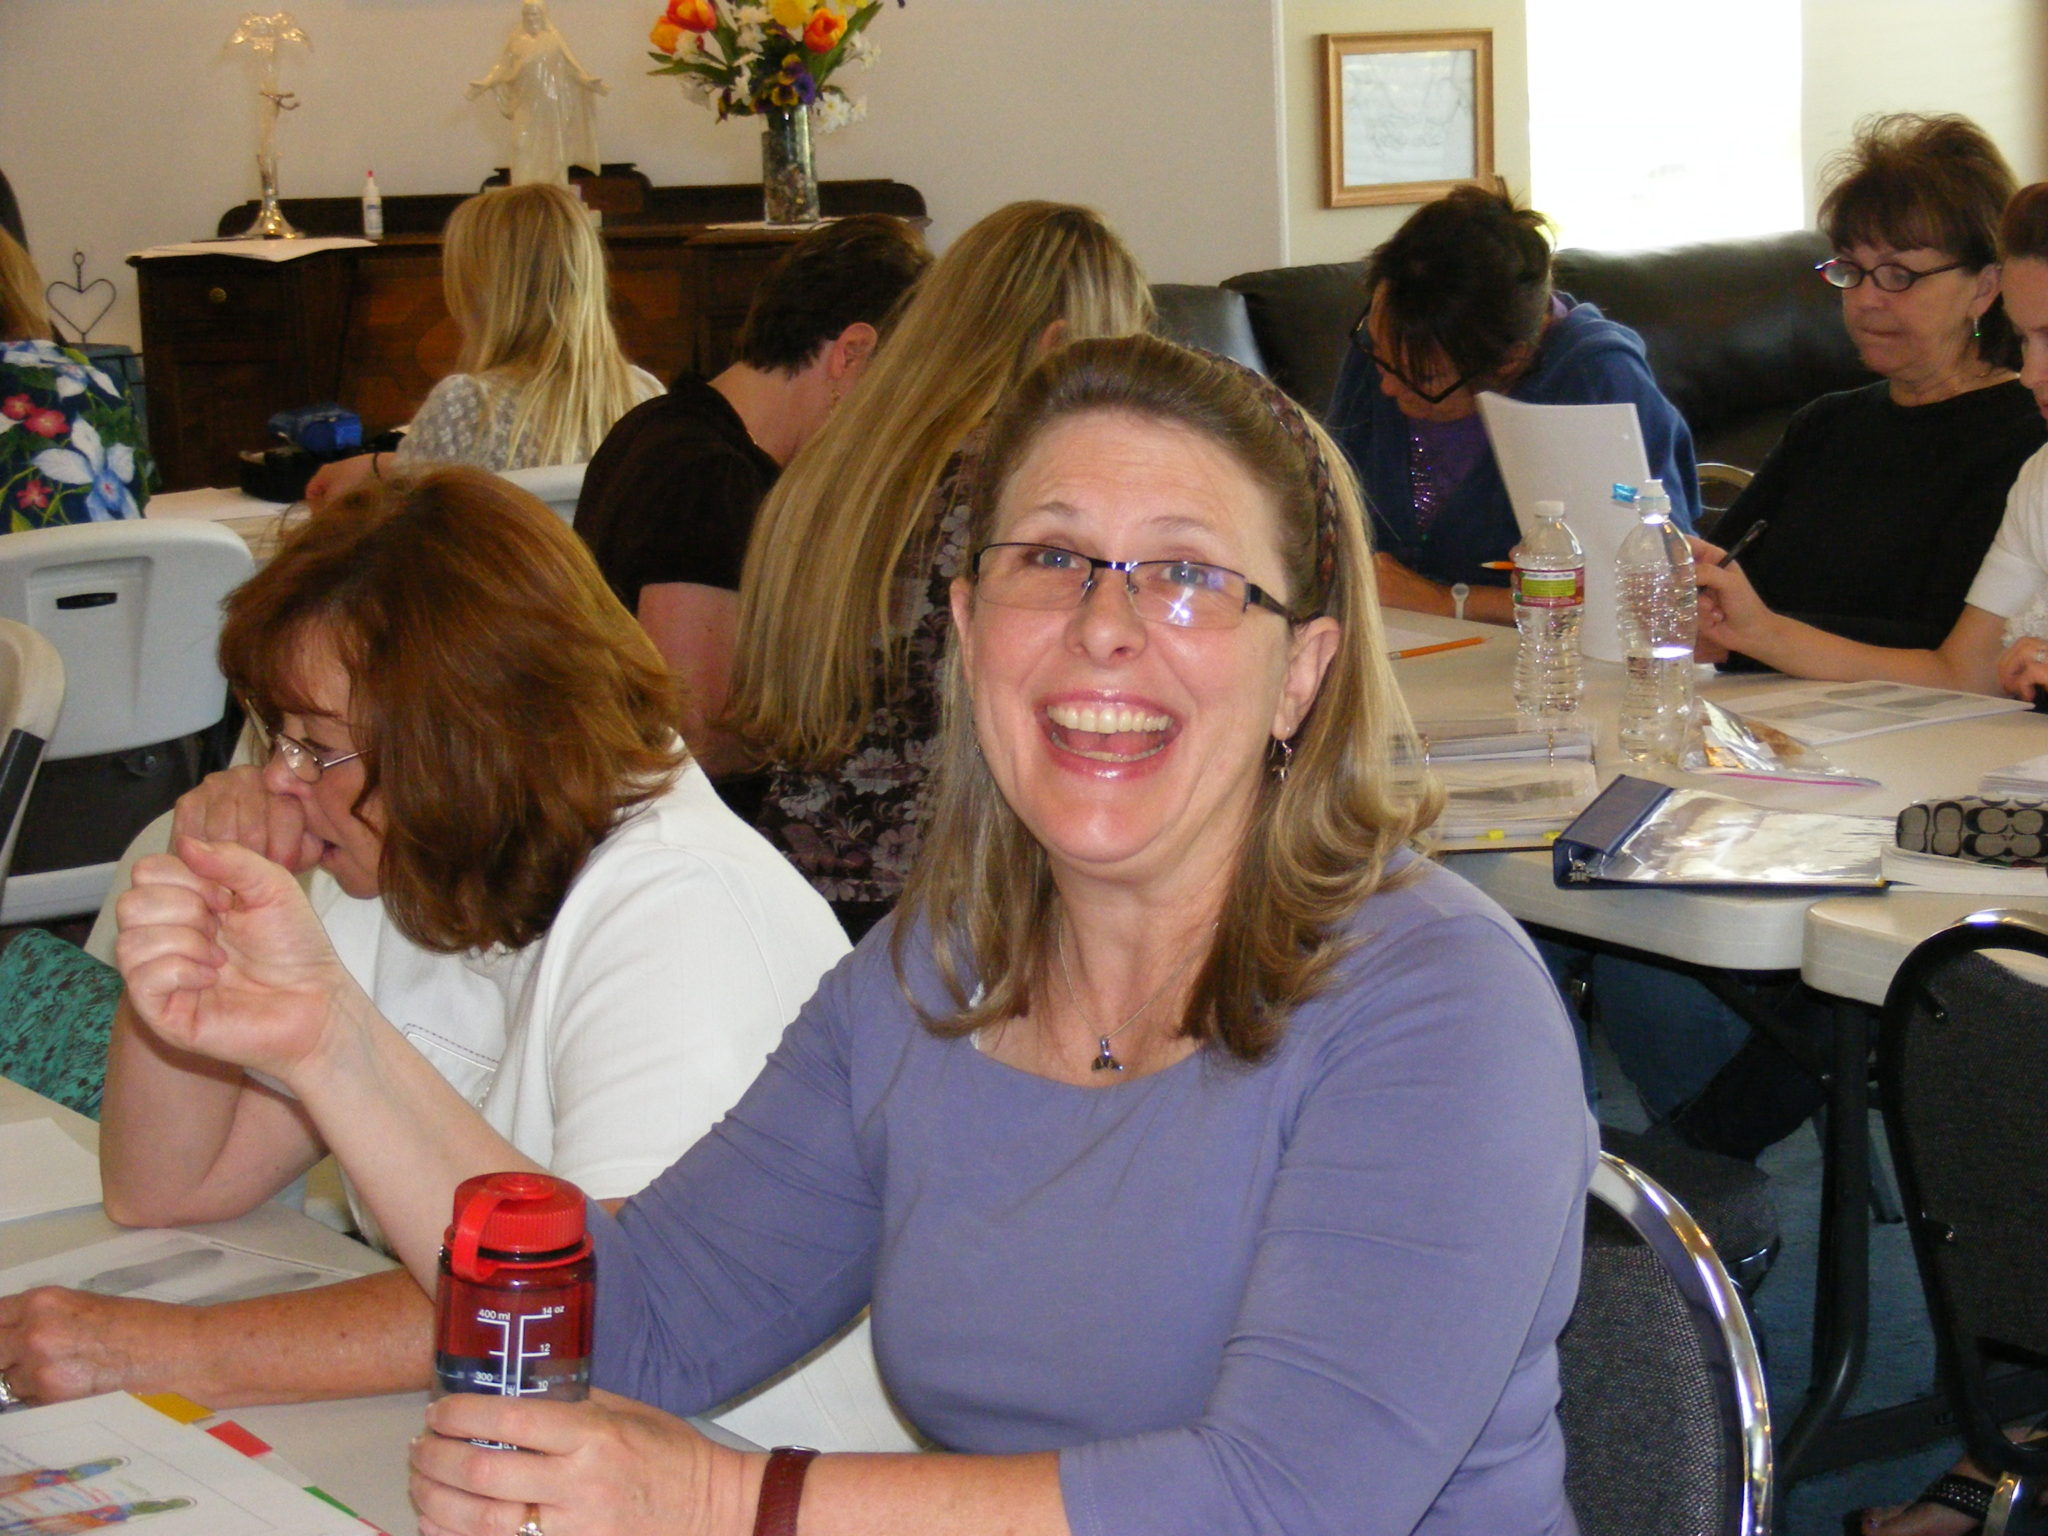 Foot Zone Certification Classes – A Student's Perspective